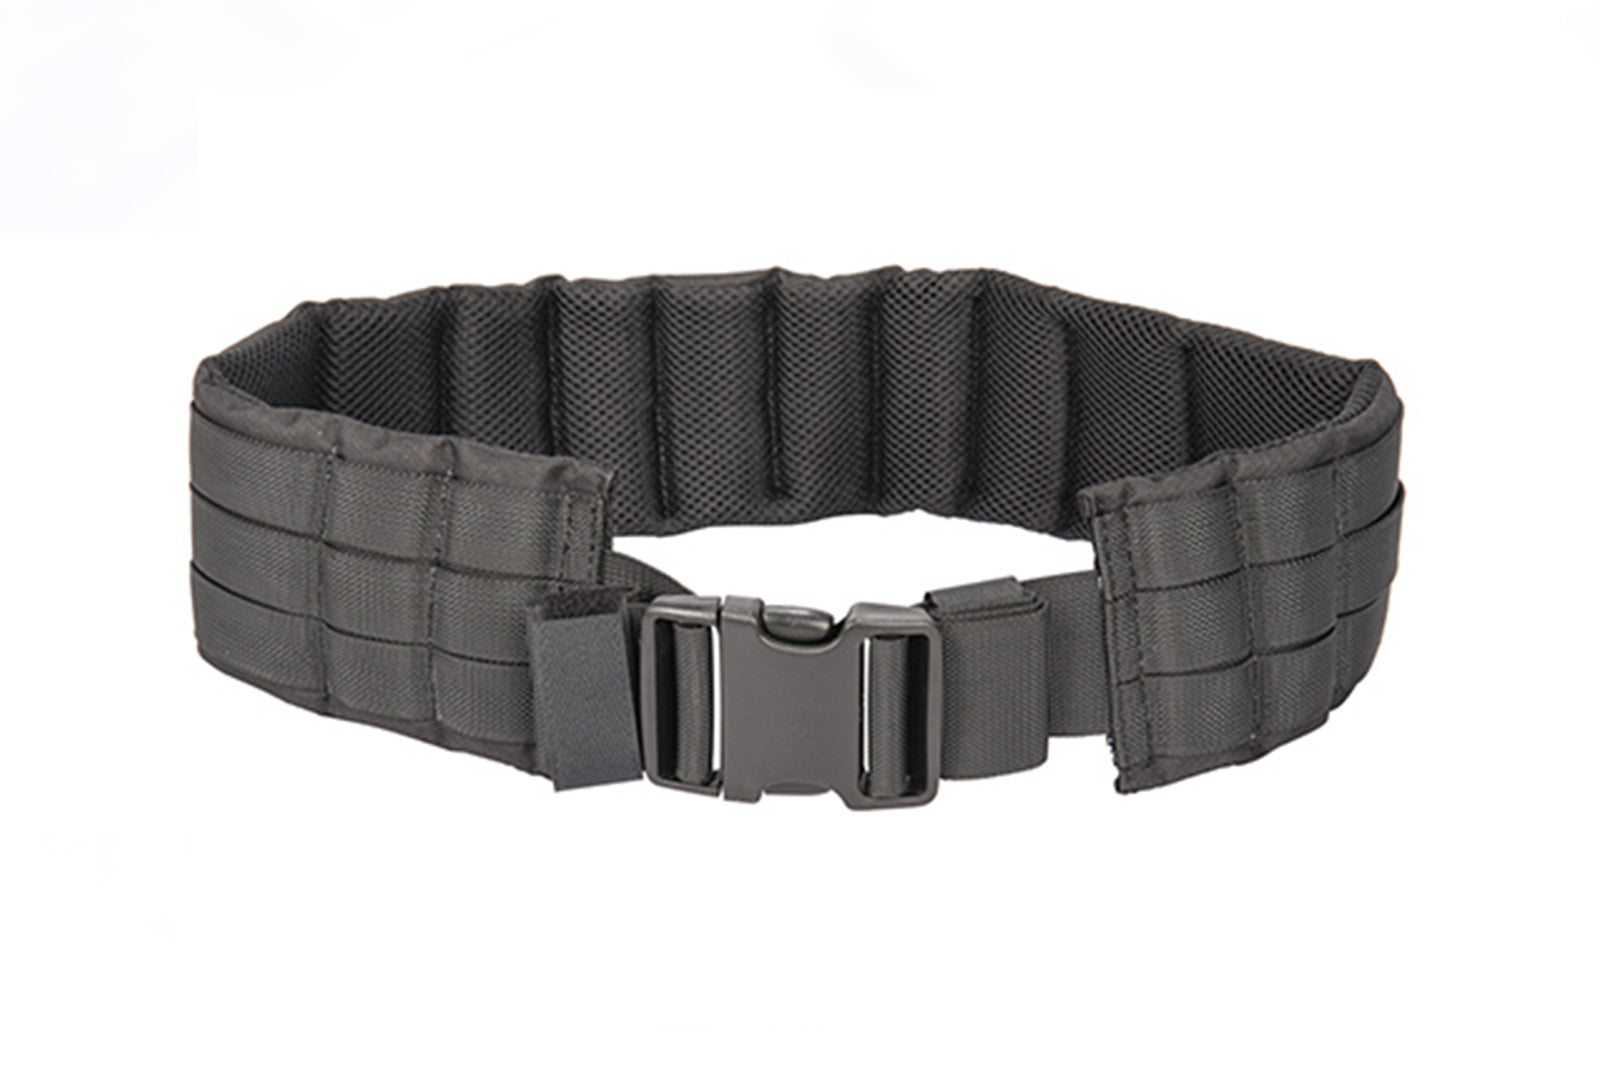 Lancer Tactical Molle Battle Belt